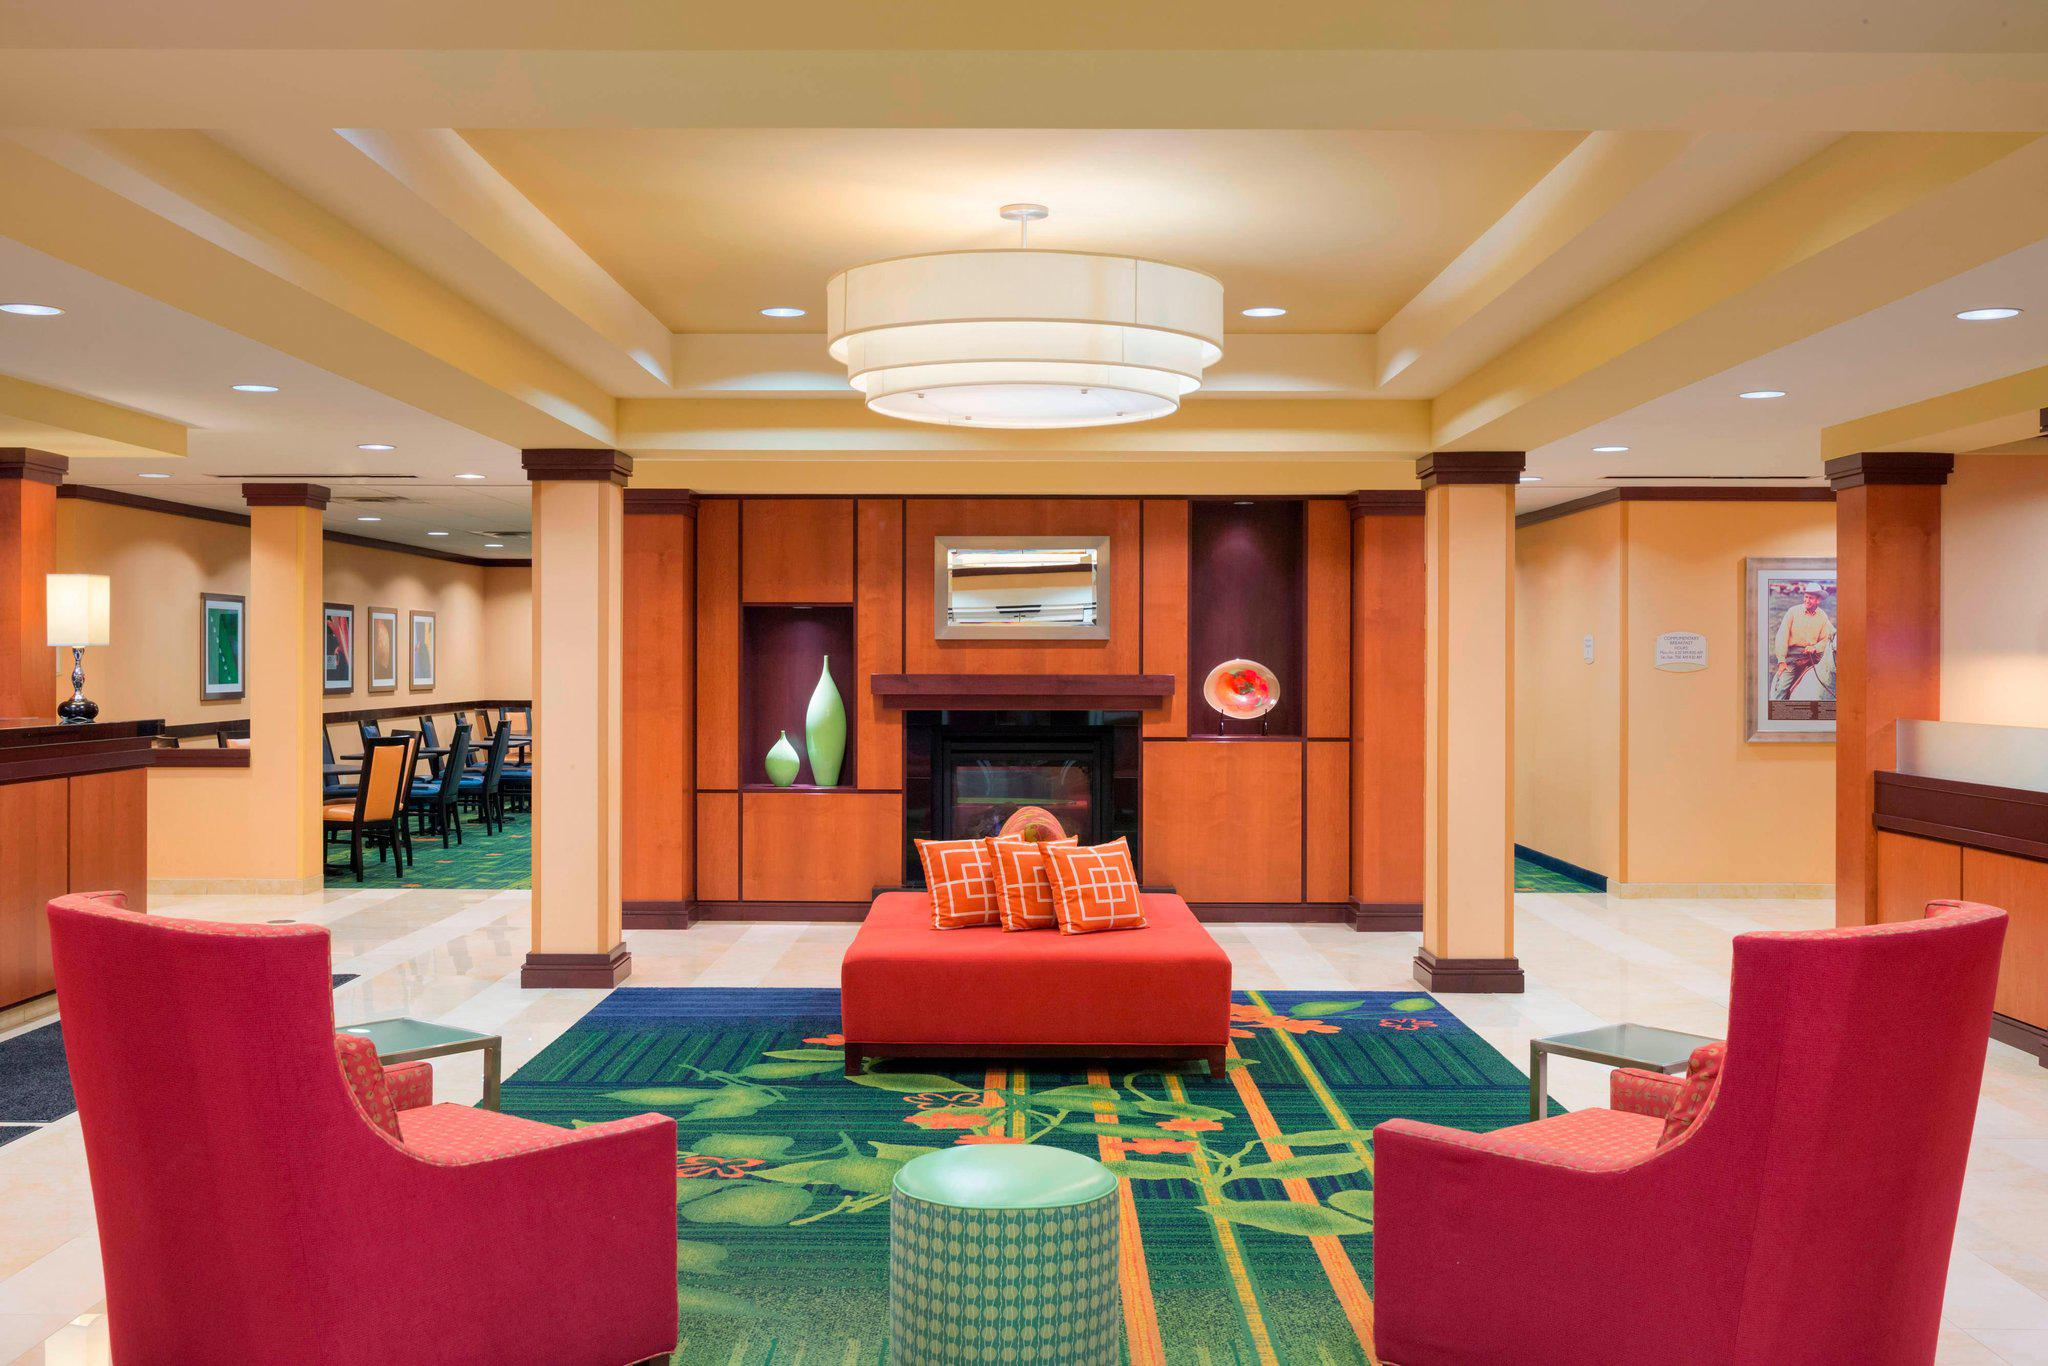 Fairfield Inn & Suites by Marriott Huntingdon Route 22/Raystown Lake